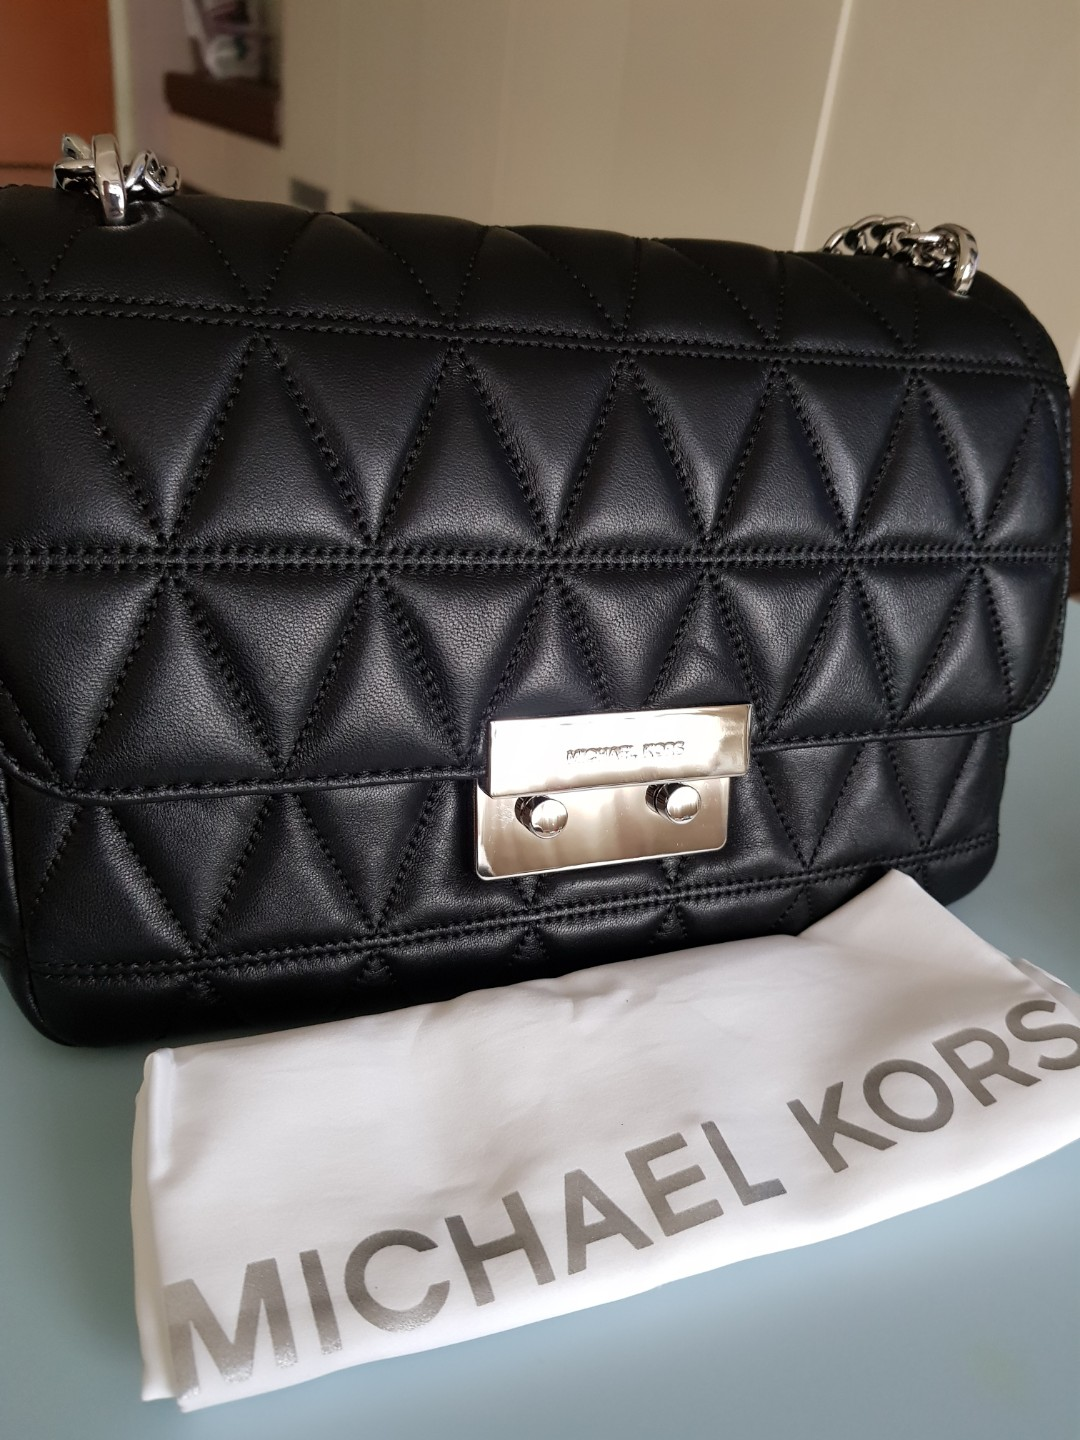 ... MICHAEL KORS SLOGAN LARGE, Luxury, Bags Wallets, Handbags o reputable  site 806bc 3ee39 ... 265b061058